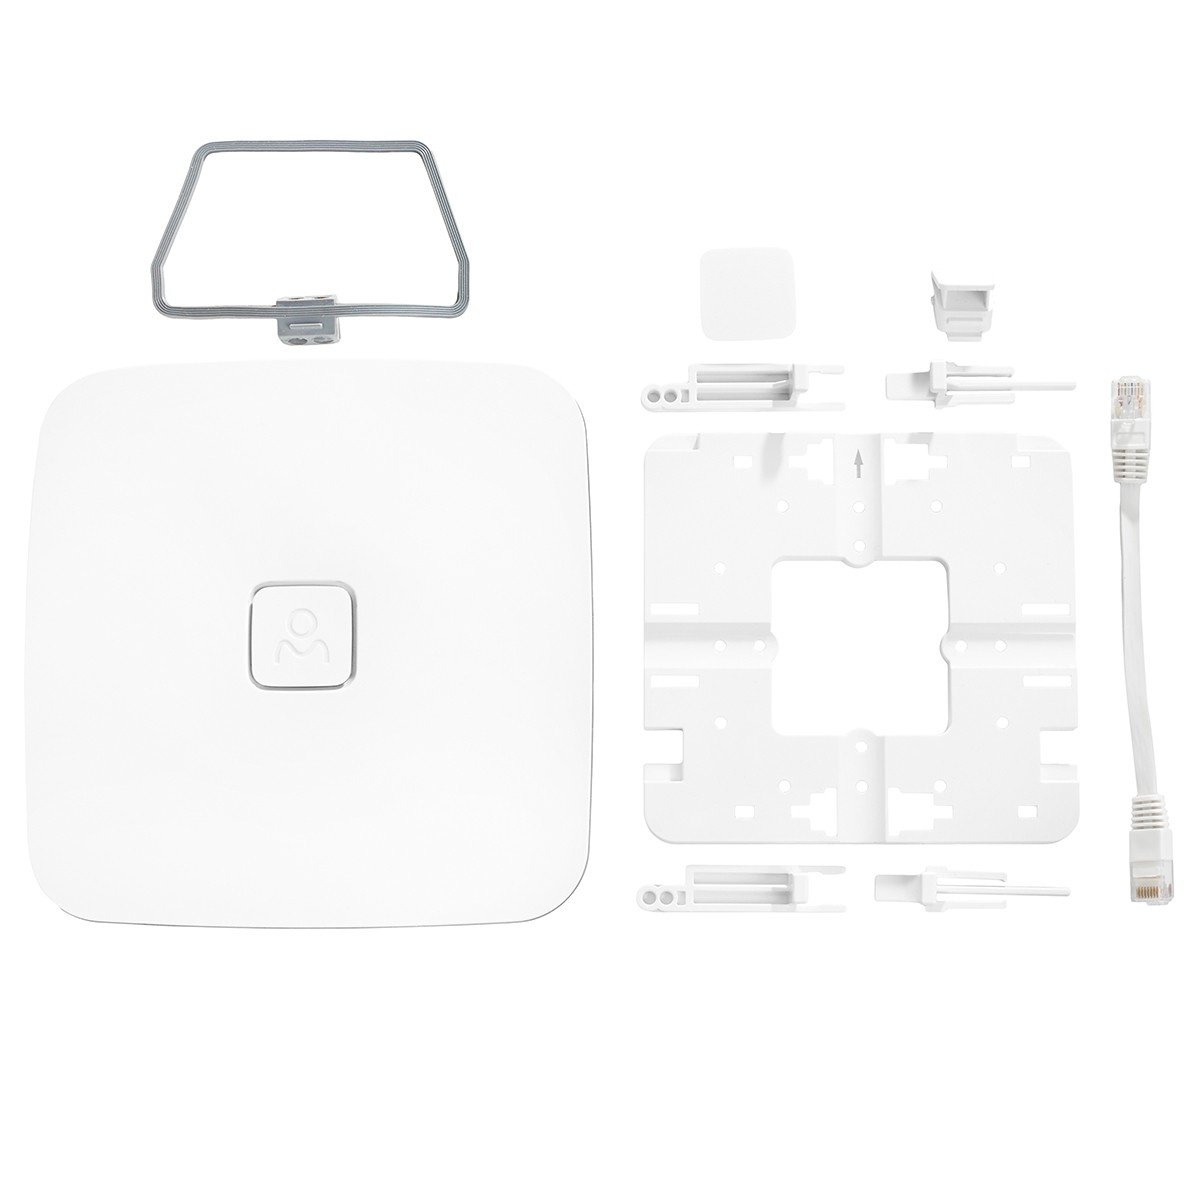 Open-Mesh 2.4/5GHz Access Point with 2x2 MIMO 802.11ac (A40)